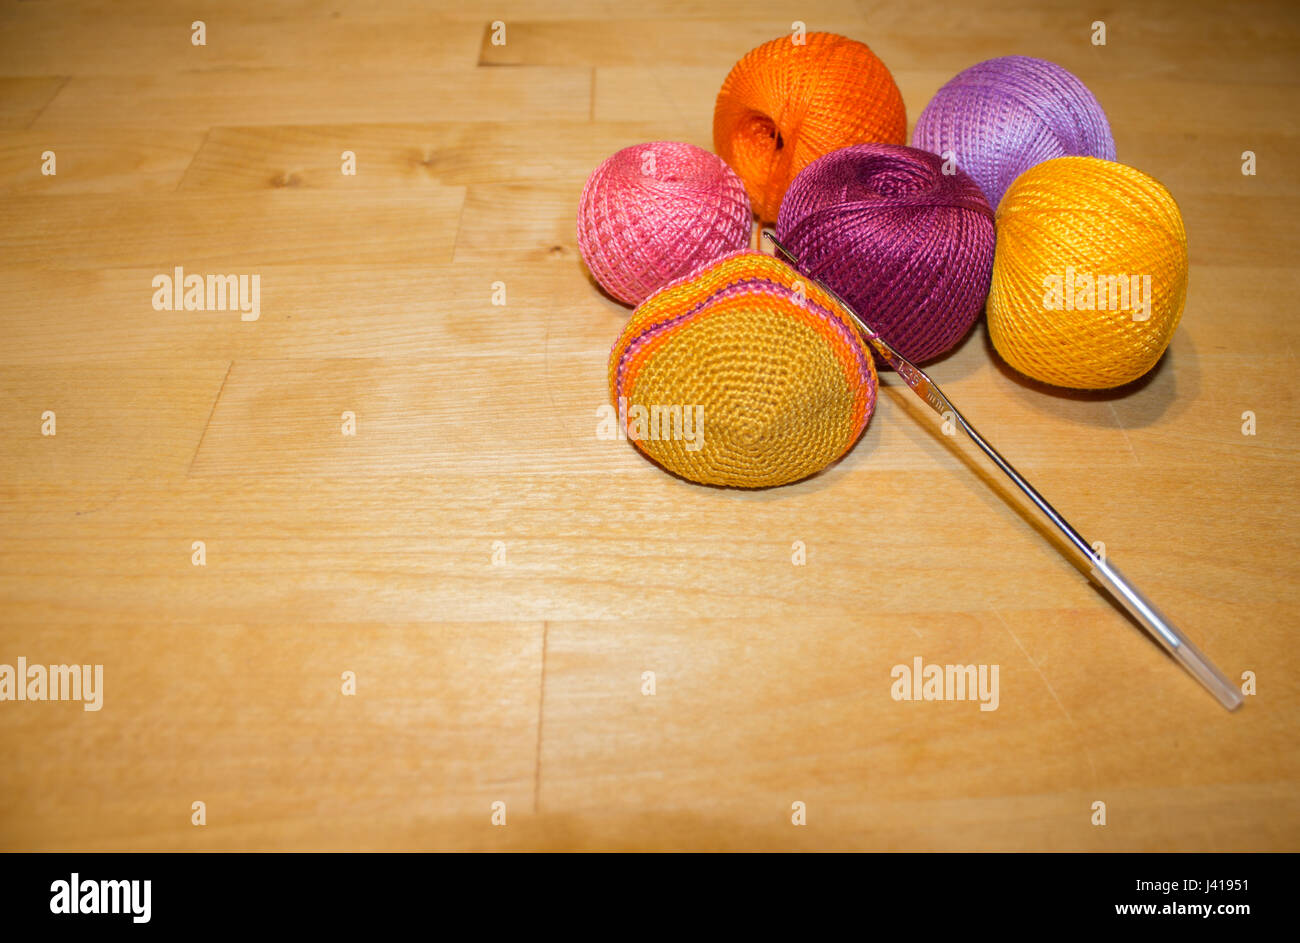 crocheting in progress and colorful cotton thread balls on the wooden background with space - Stock Image